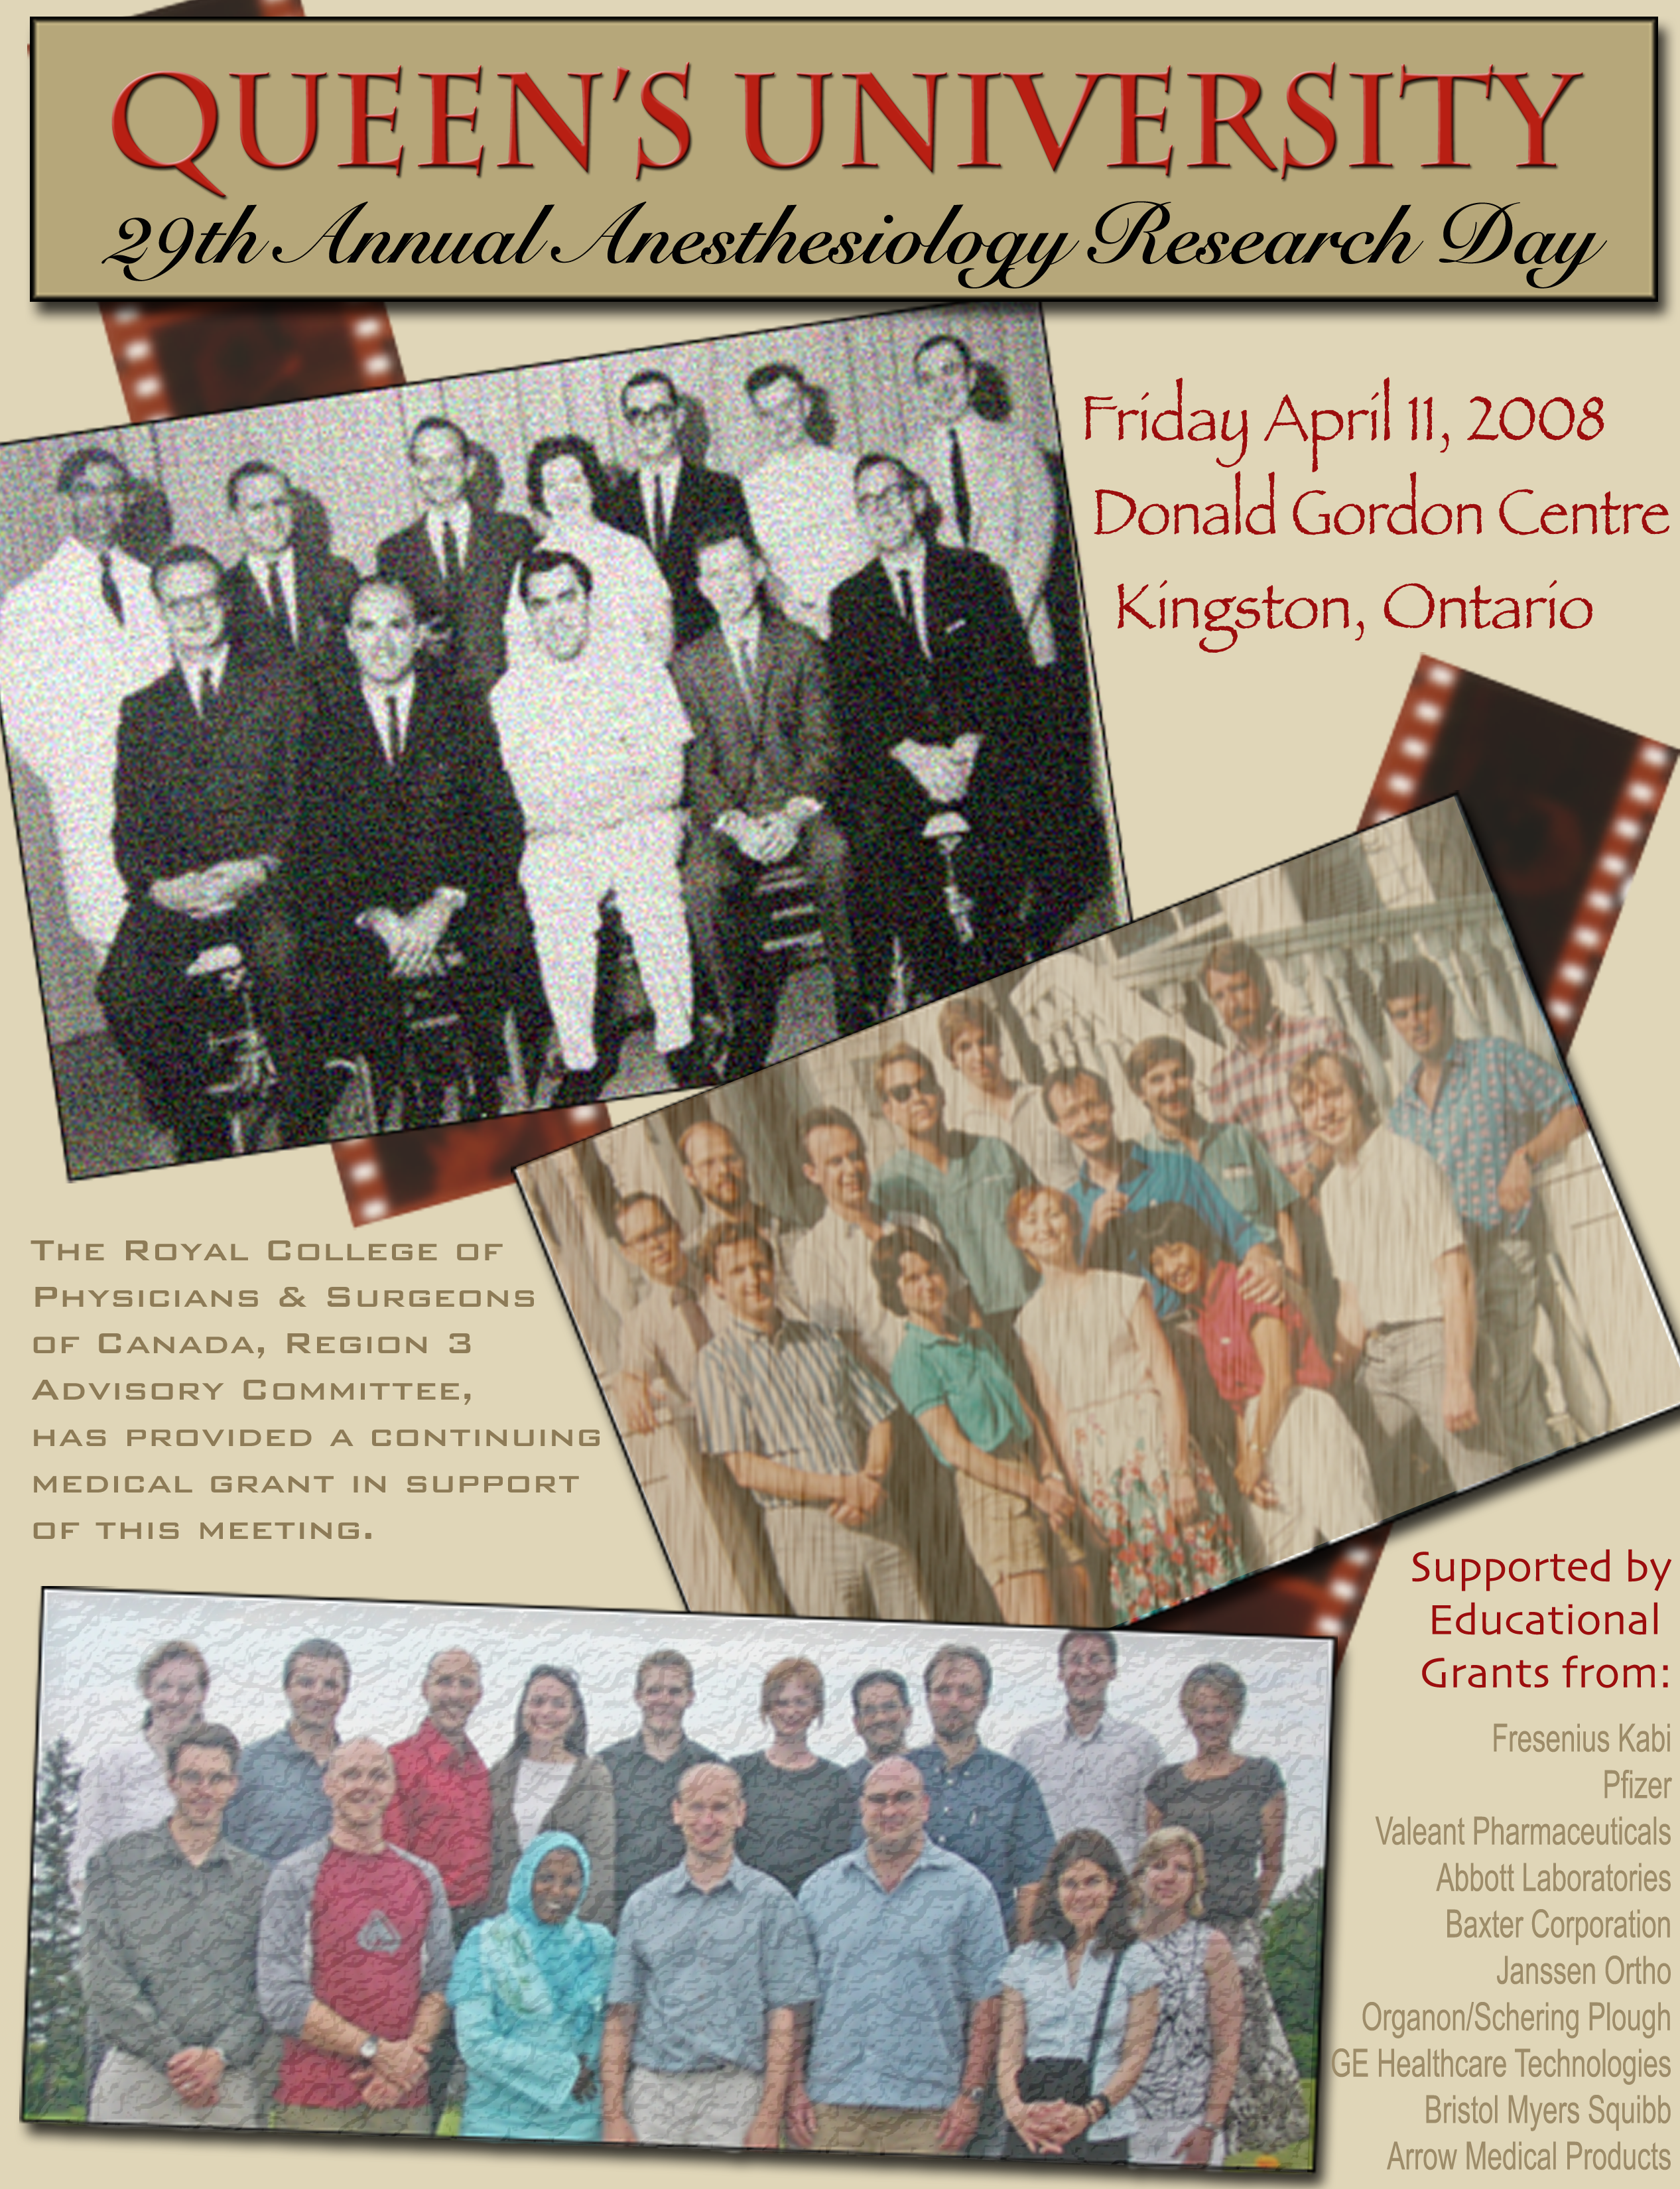 Queen's University 29th Annual Anesthesiology Research Day